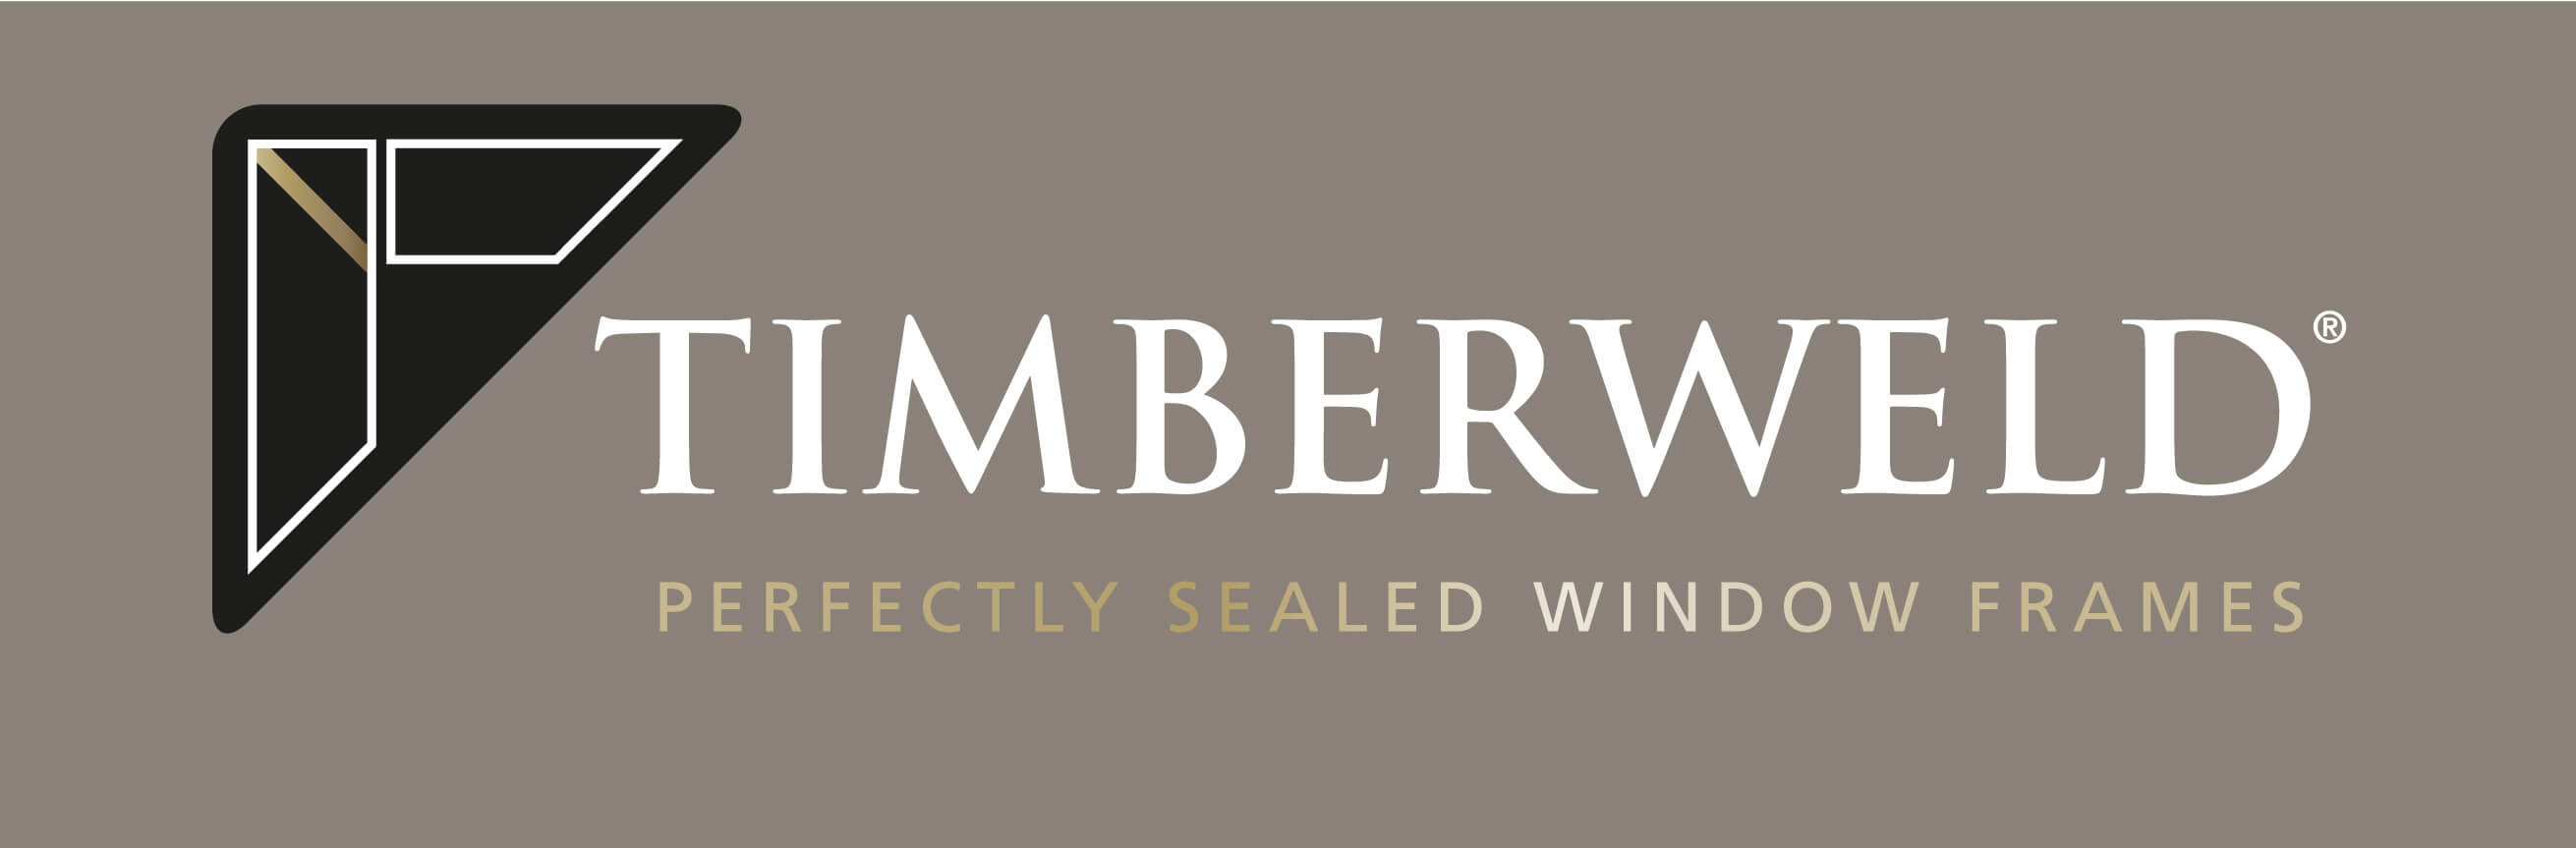 Timberweld logo general use